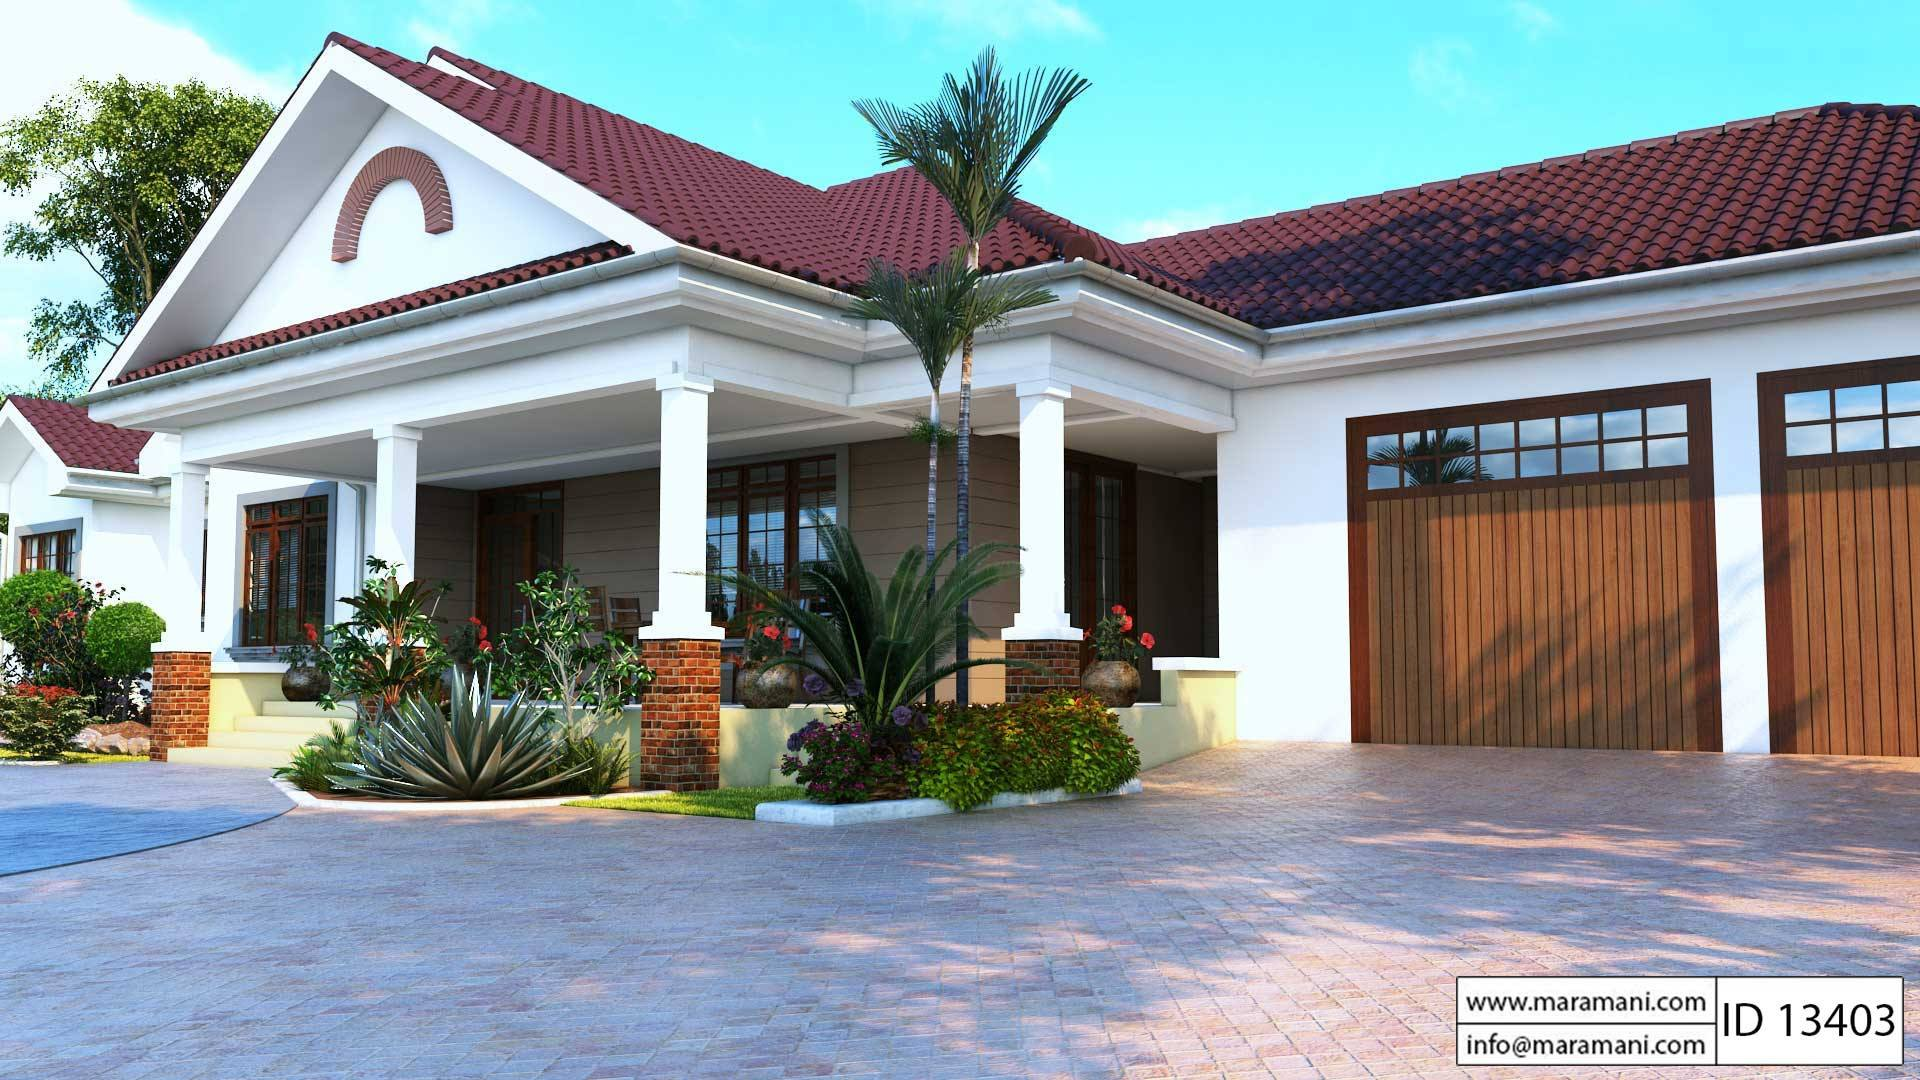 3 Bedroom bungalow with garage ID 13403 House Plans by Maramani